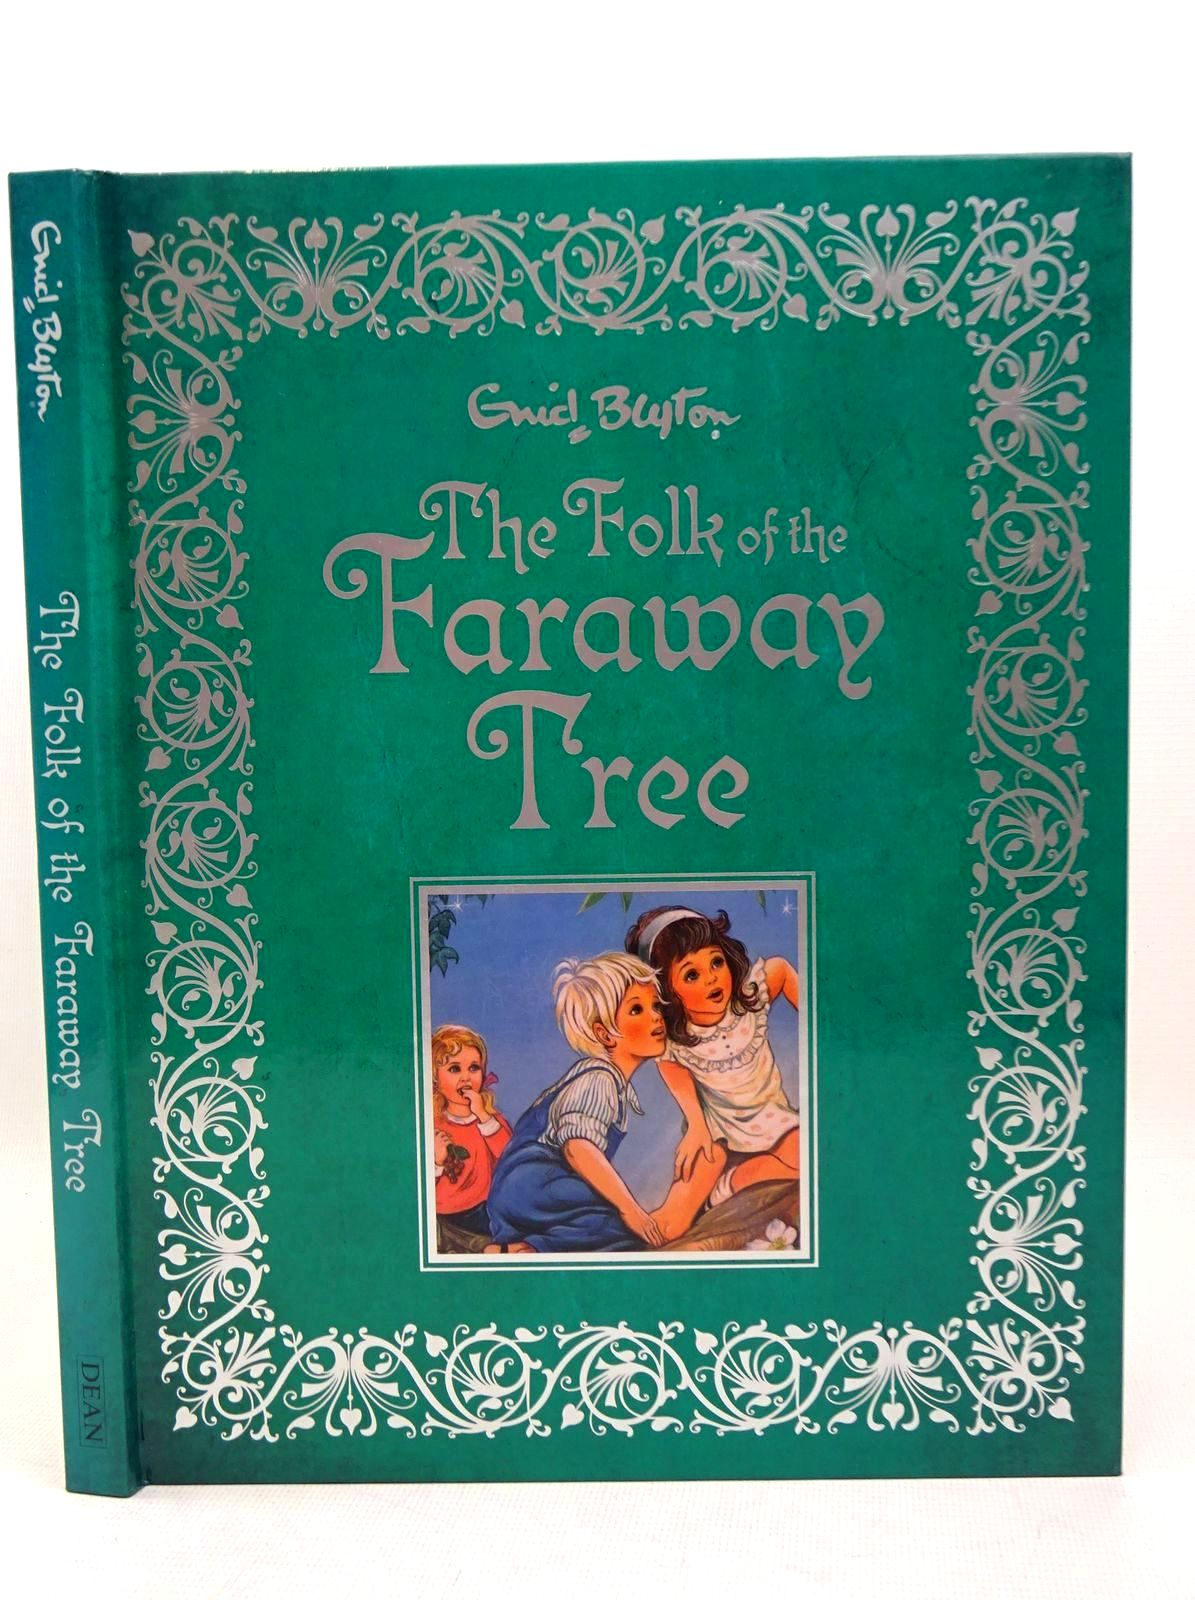 Photo of THE FOLK OF THE FARAWAY TREE written by Blyton, Enid illustrated by Hargreaves, Georgina published by Dean, Egmont Uk Limited (STOCK CODE: 1317641)  for sale by Stella & Rose's Books